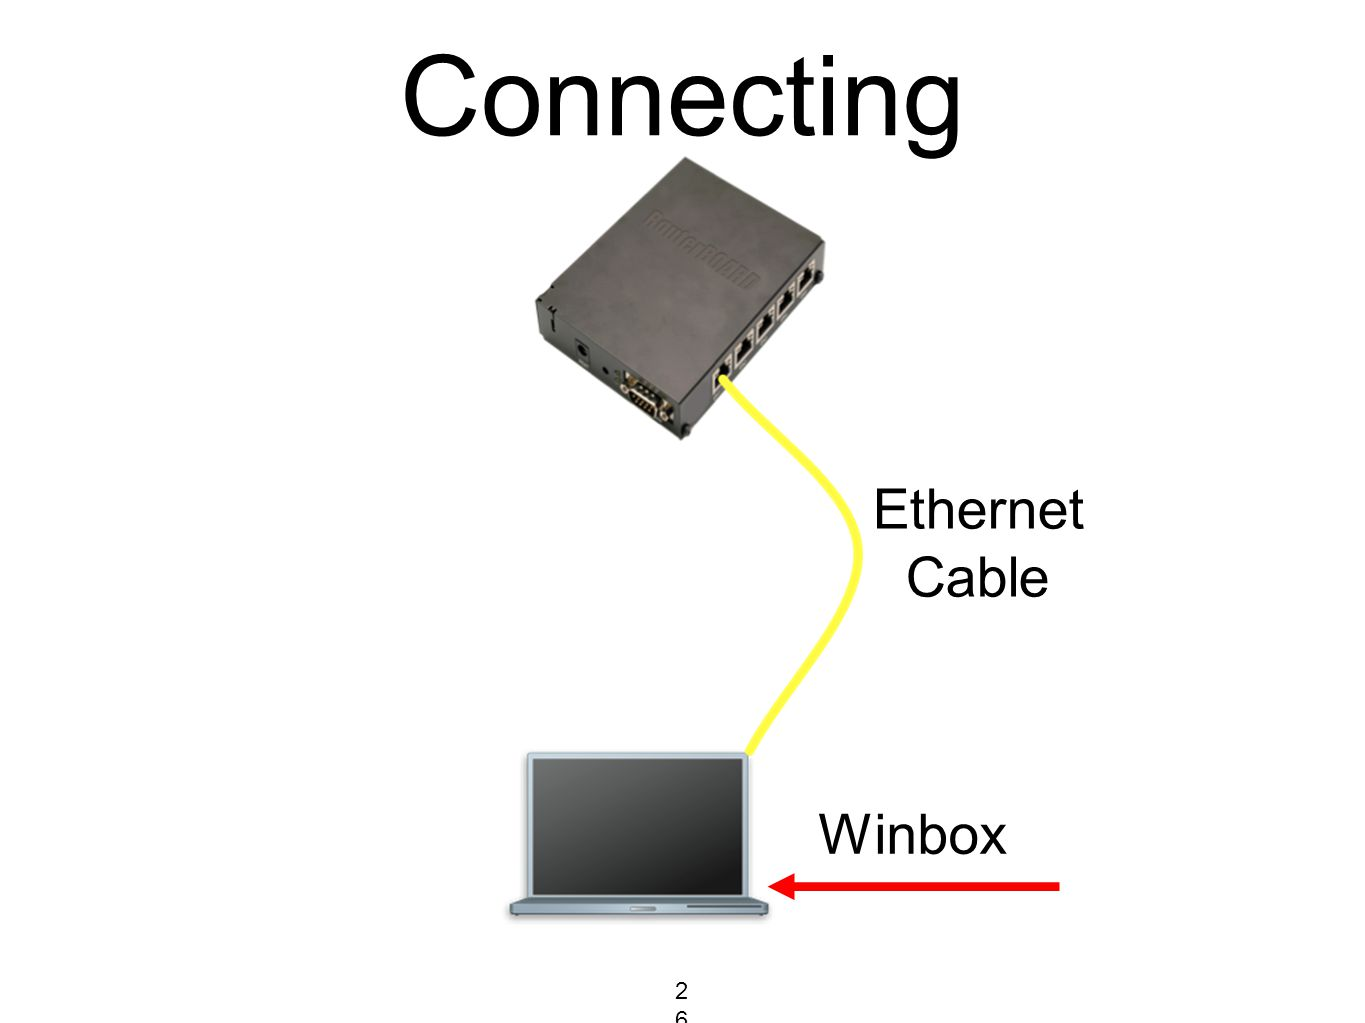 Connecting Winbox Ethernet Cable 26